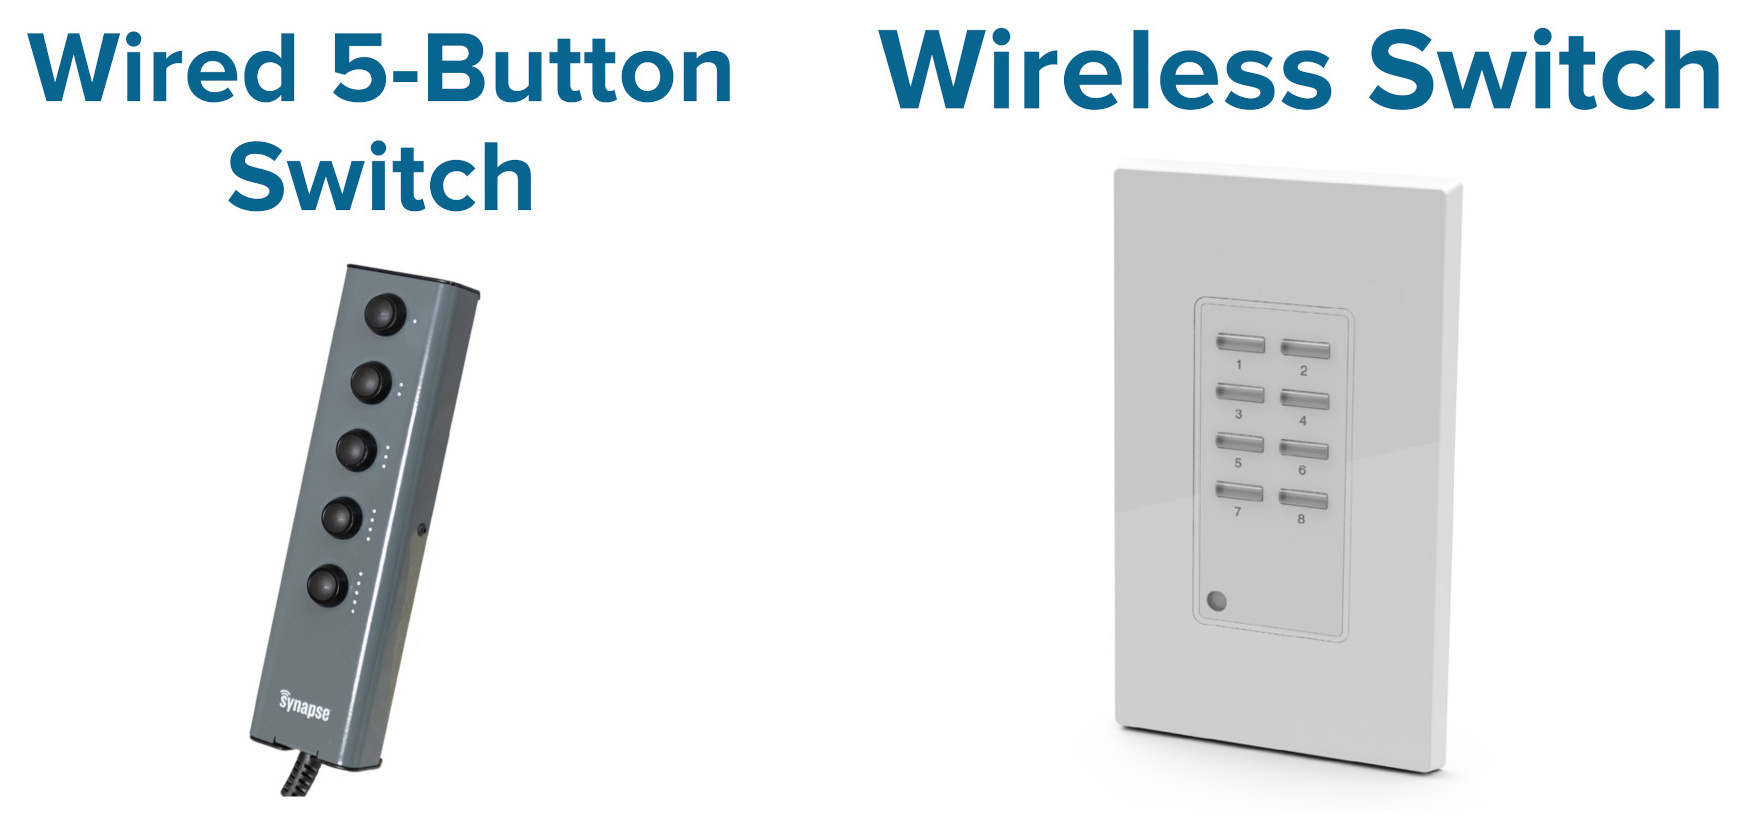 SimplySnap USB and Wireless Switches